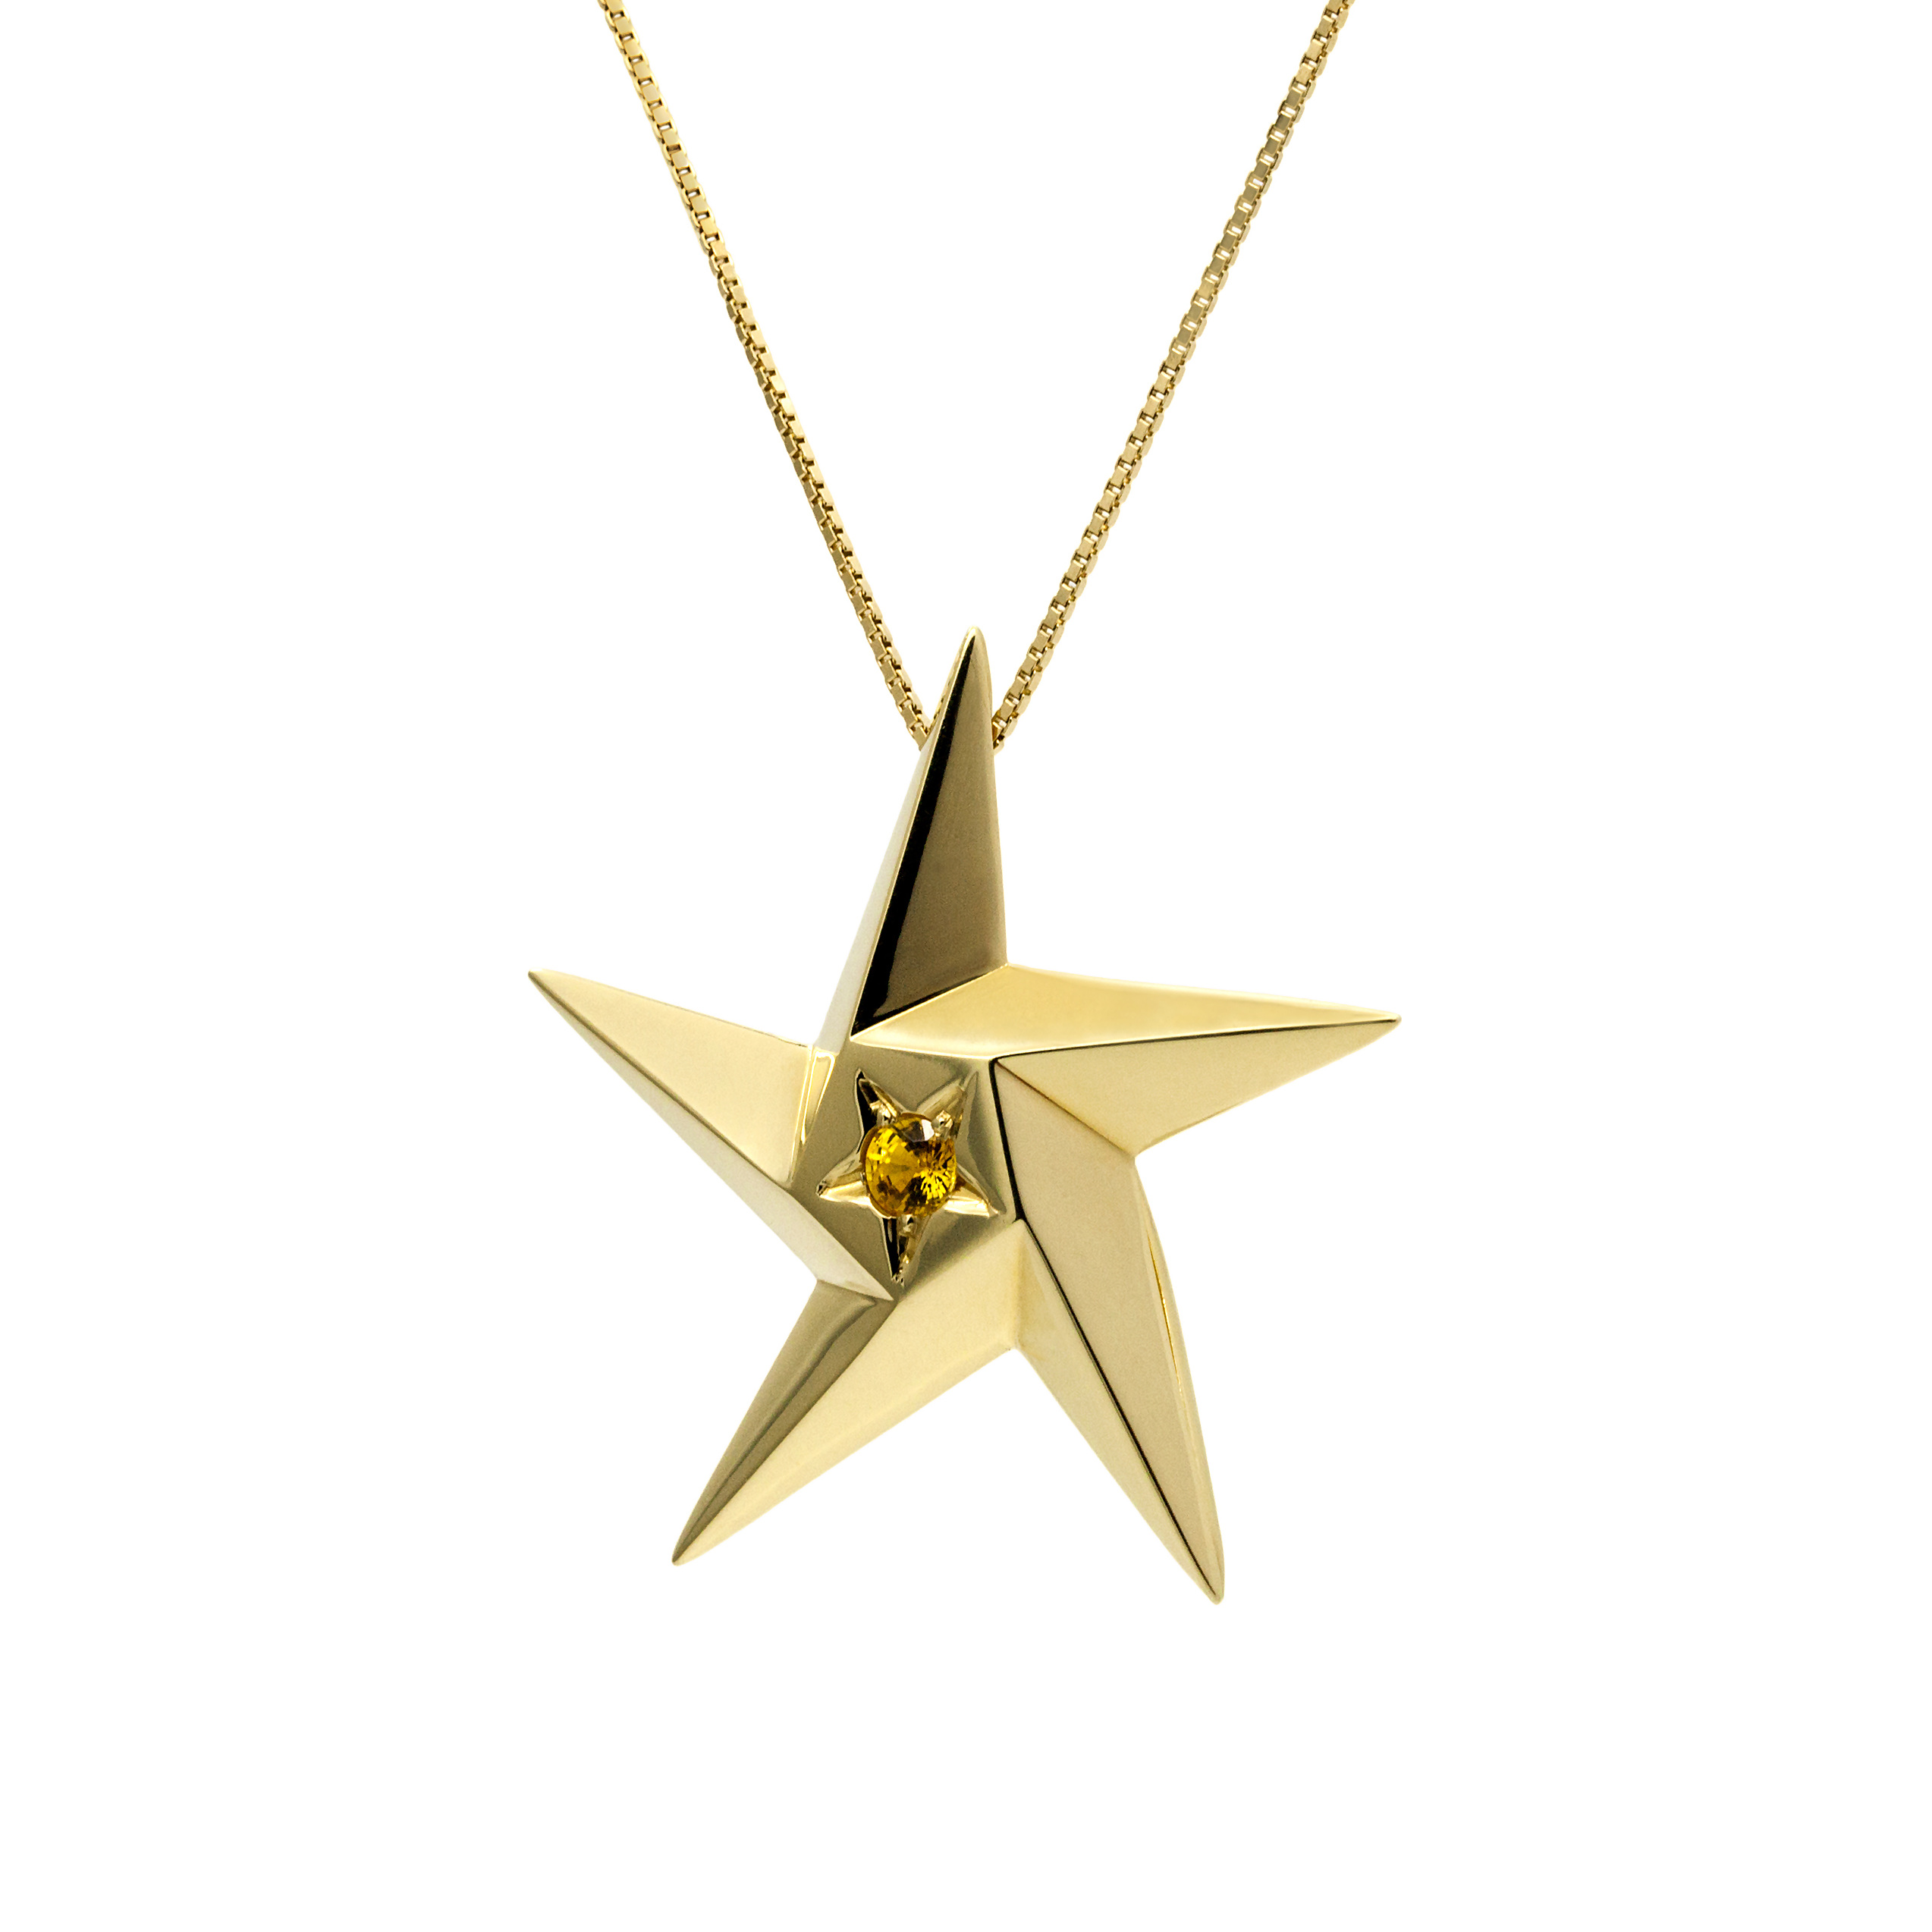 Sun Supernova Star Pendant Necklace by Daou Jewellery on curated-crowd.com